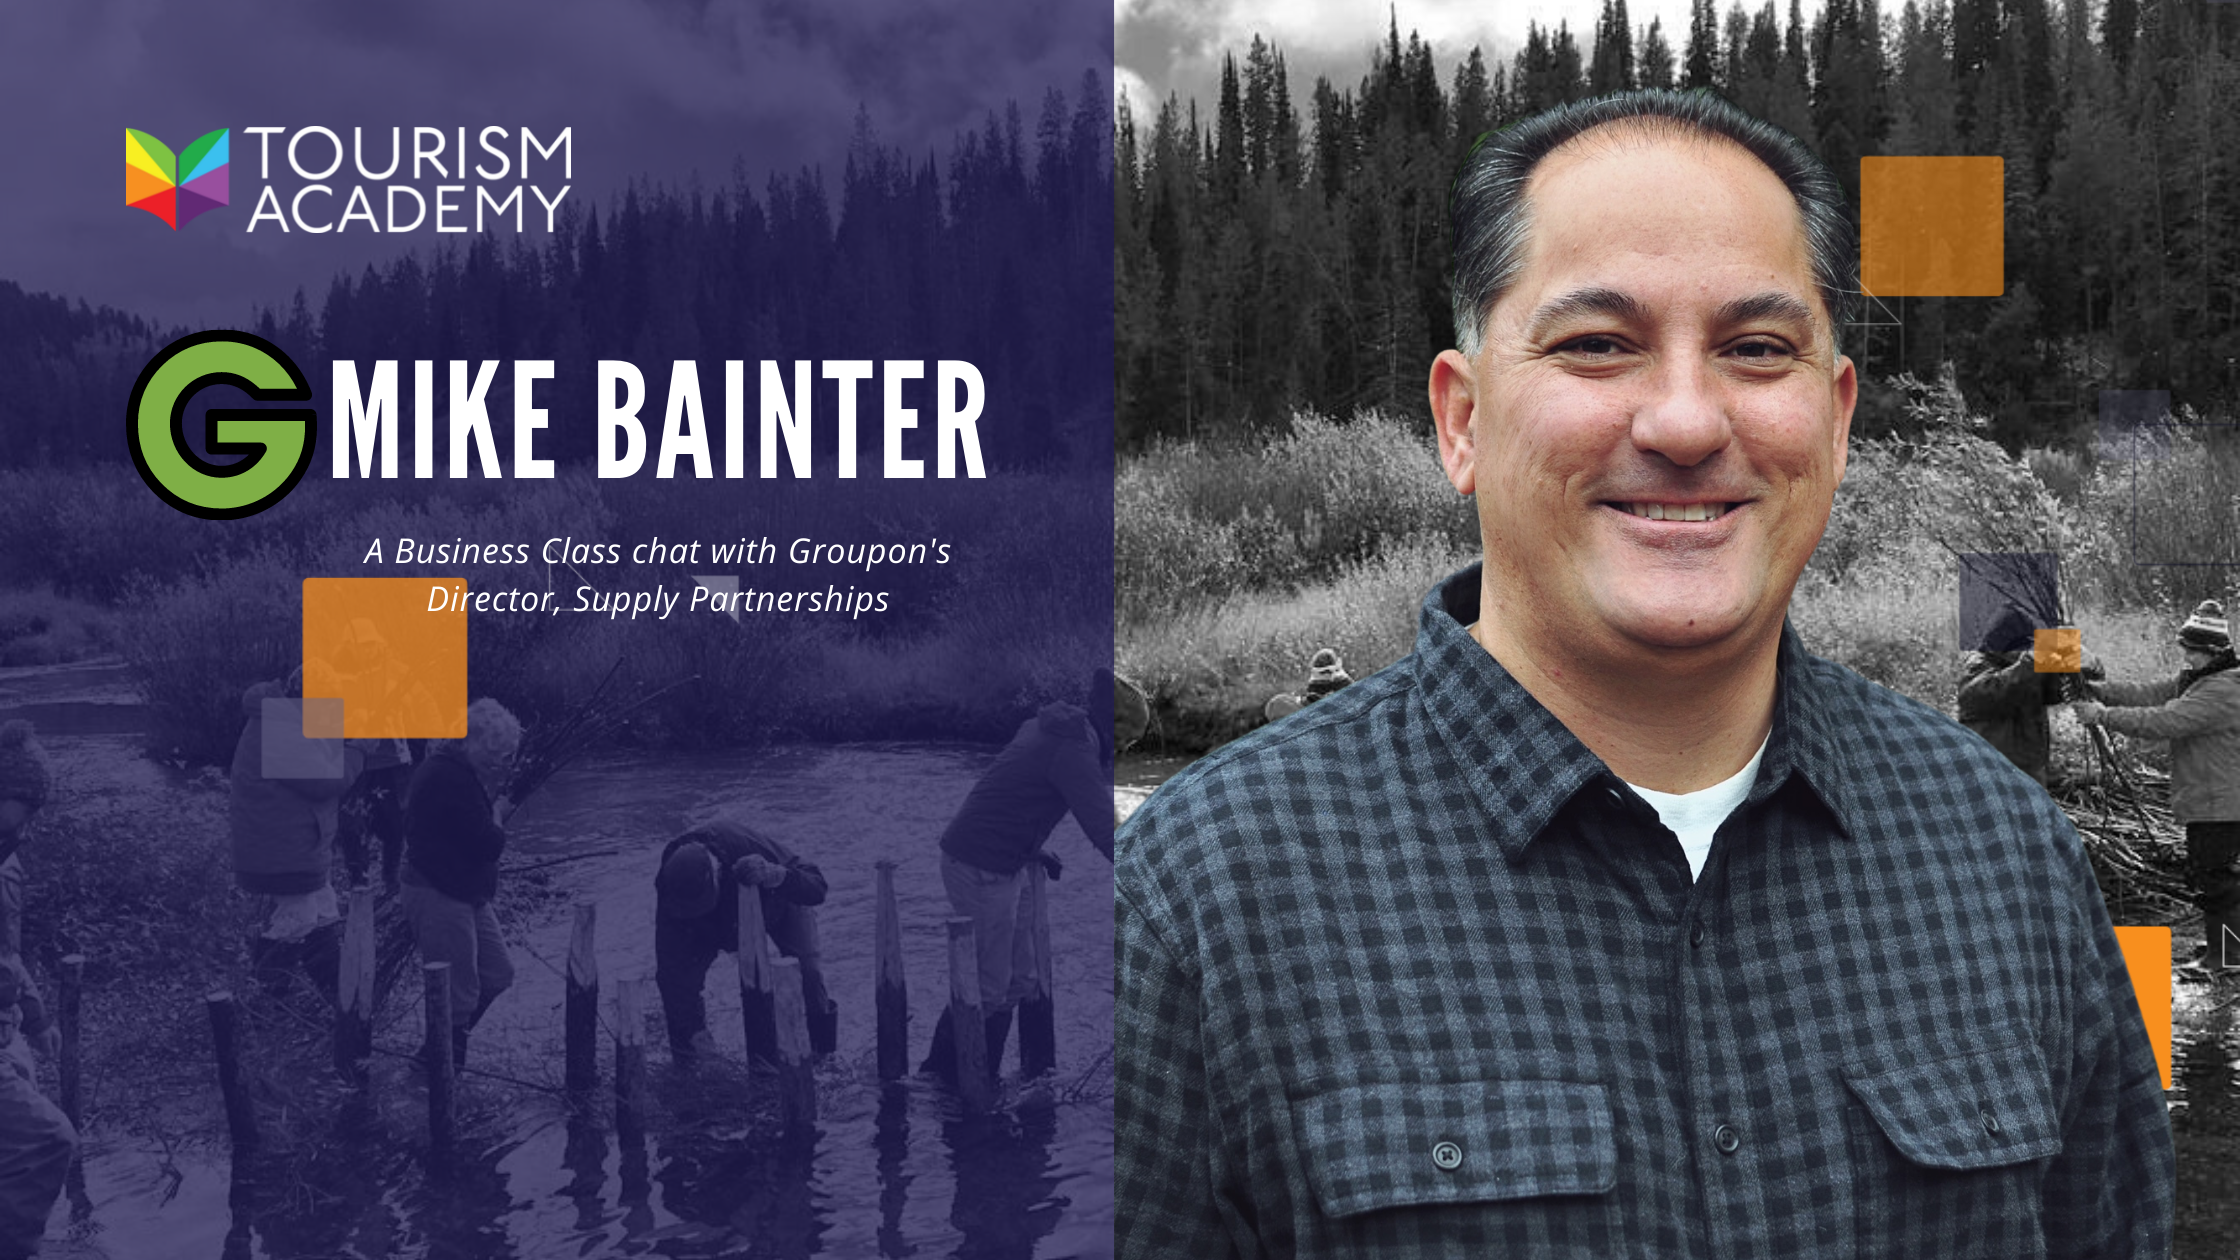 mike bainter groupon tourism academy interview profile